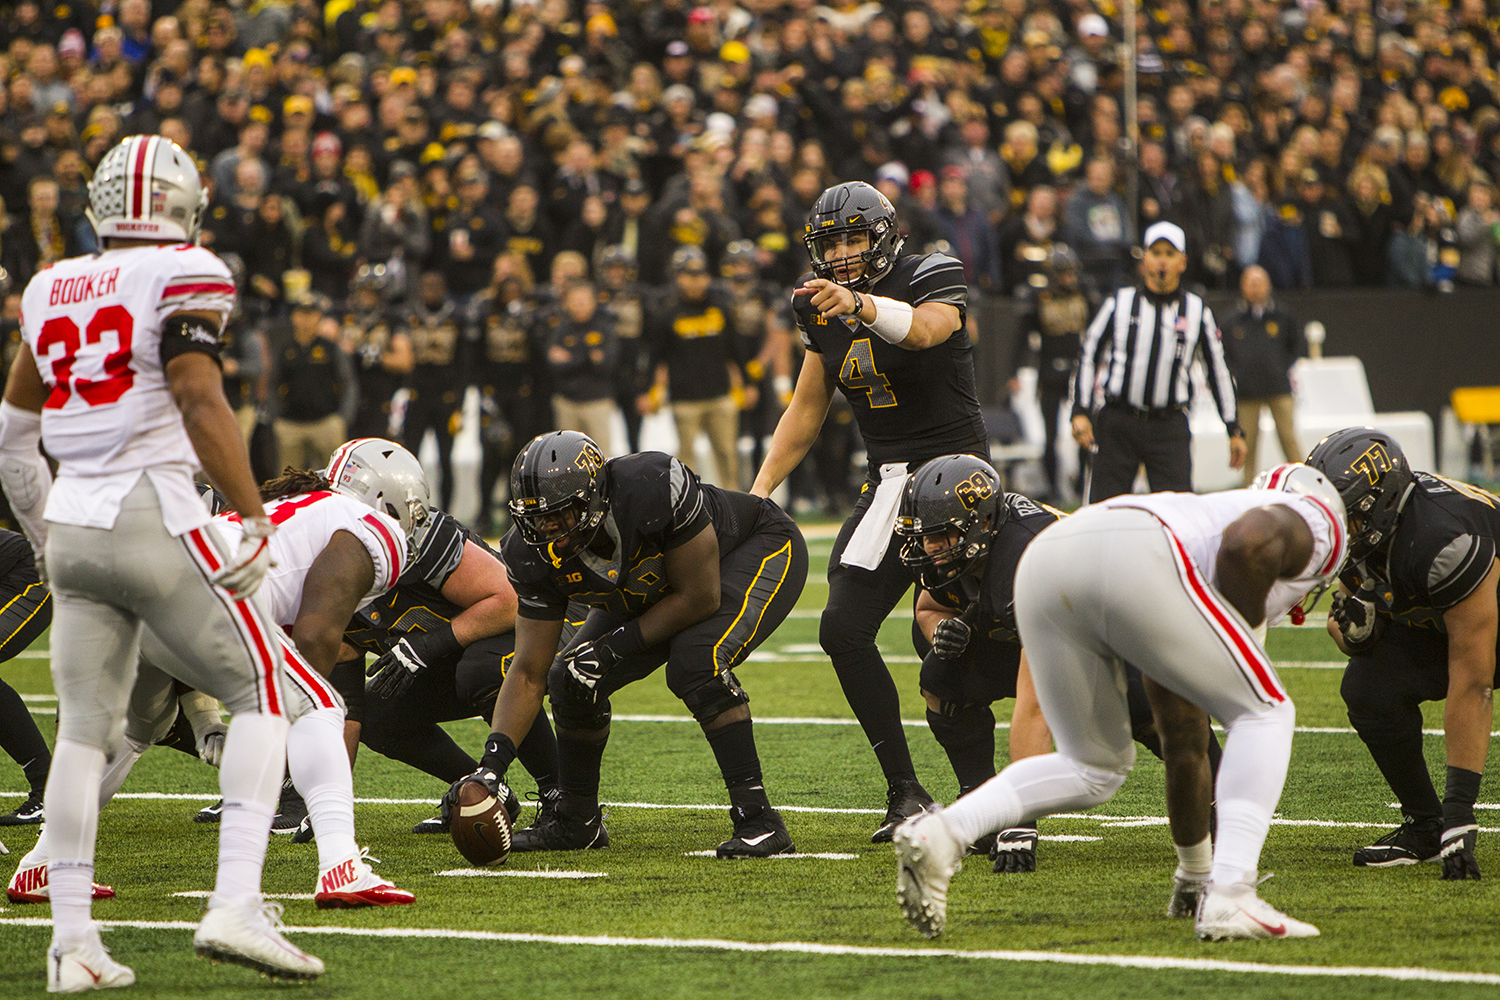 Iowa quarterback Nate Stanley points out a linebacker during Iowa's game against Ohio State at Kinnick Stadium on Saturday, Nov. 4, 2017. The Hawkeyes defeated the Buckeyes 55 to 24.